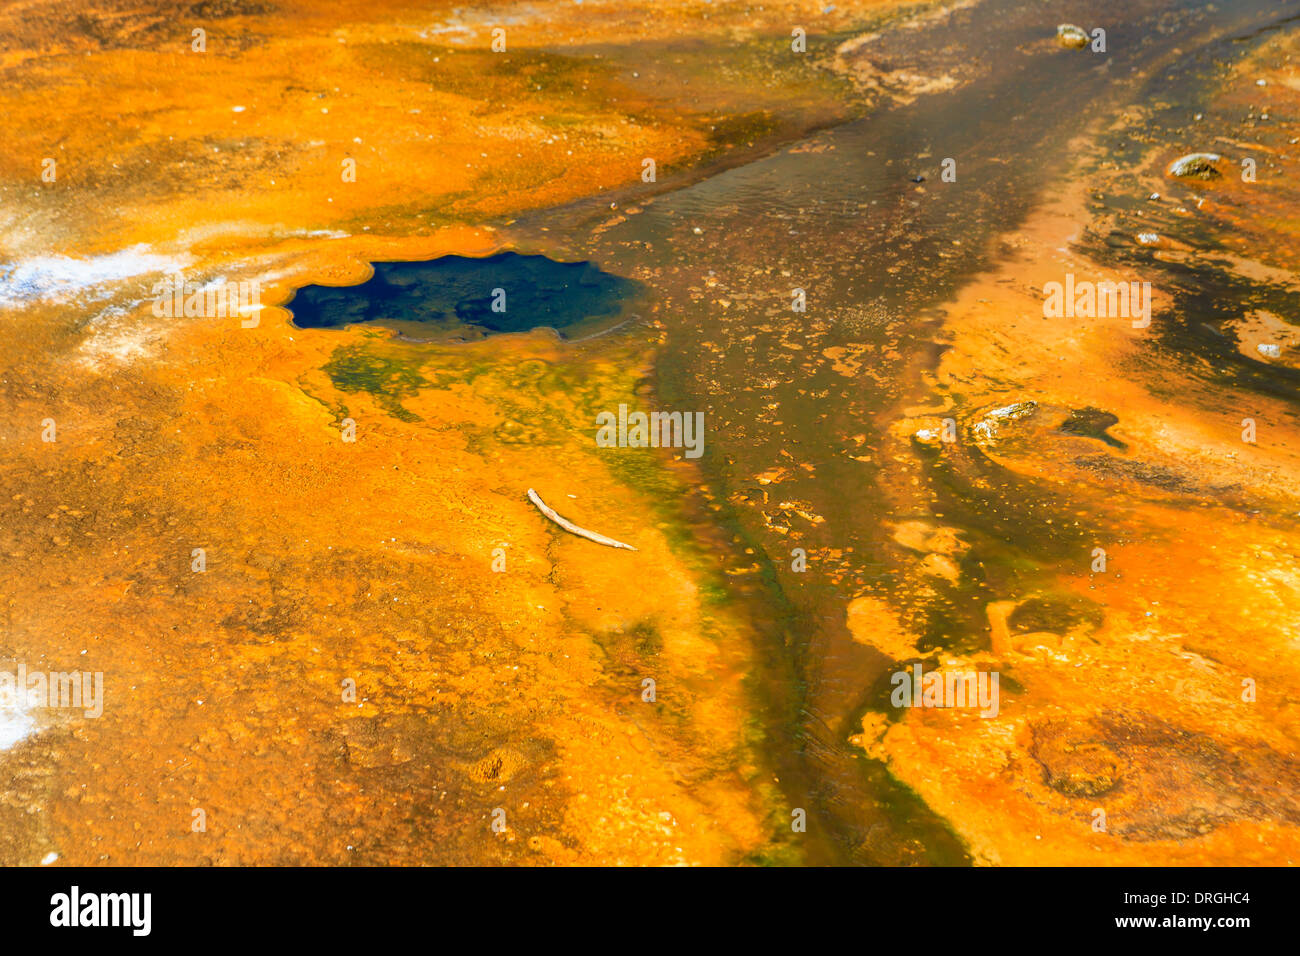 Microbial mats in geothermal pools, Yellowstone National Park ,Wyoming - Stock Image